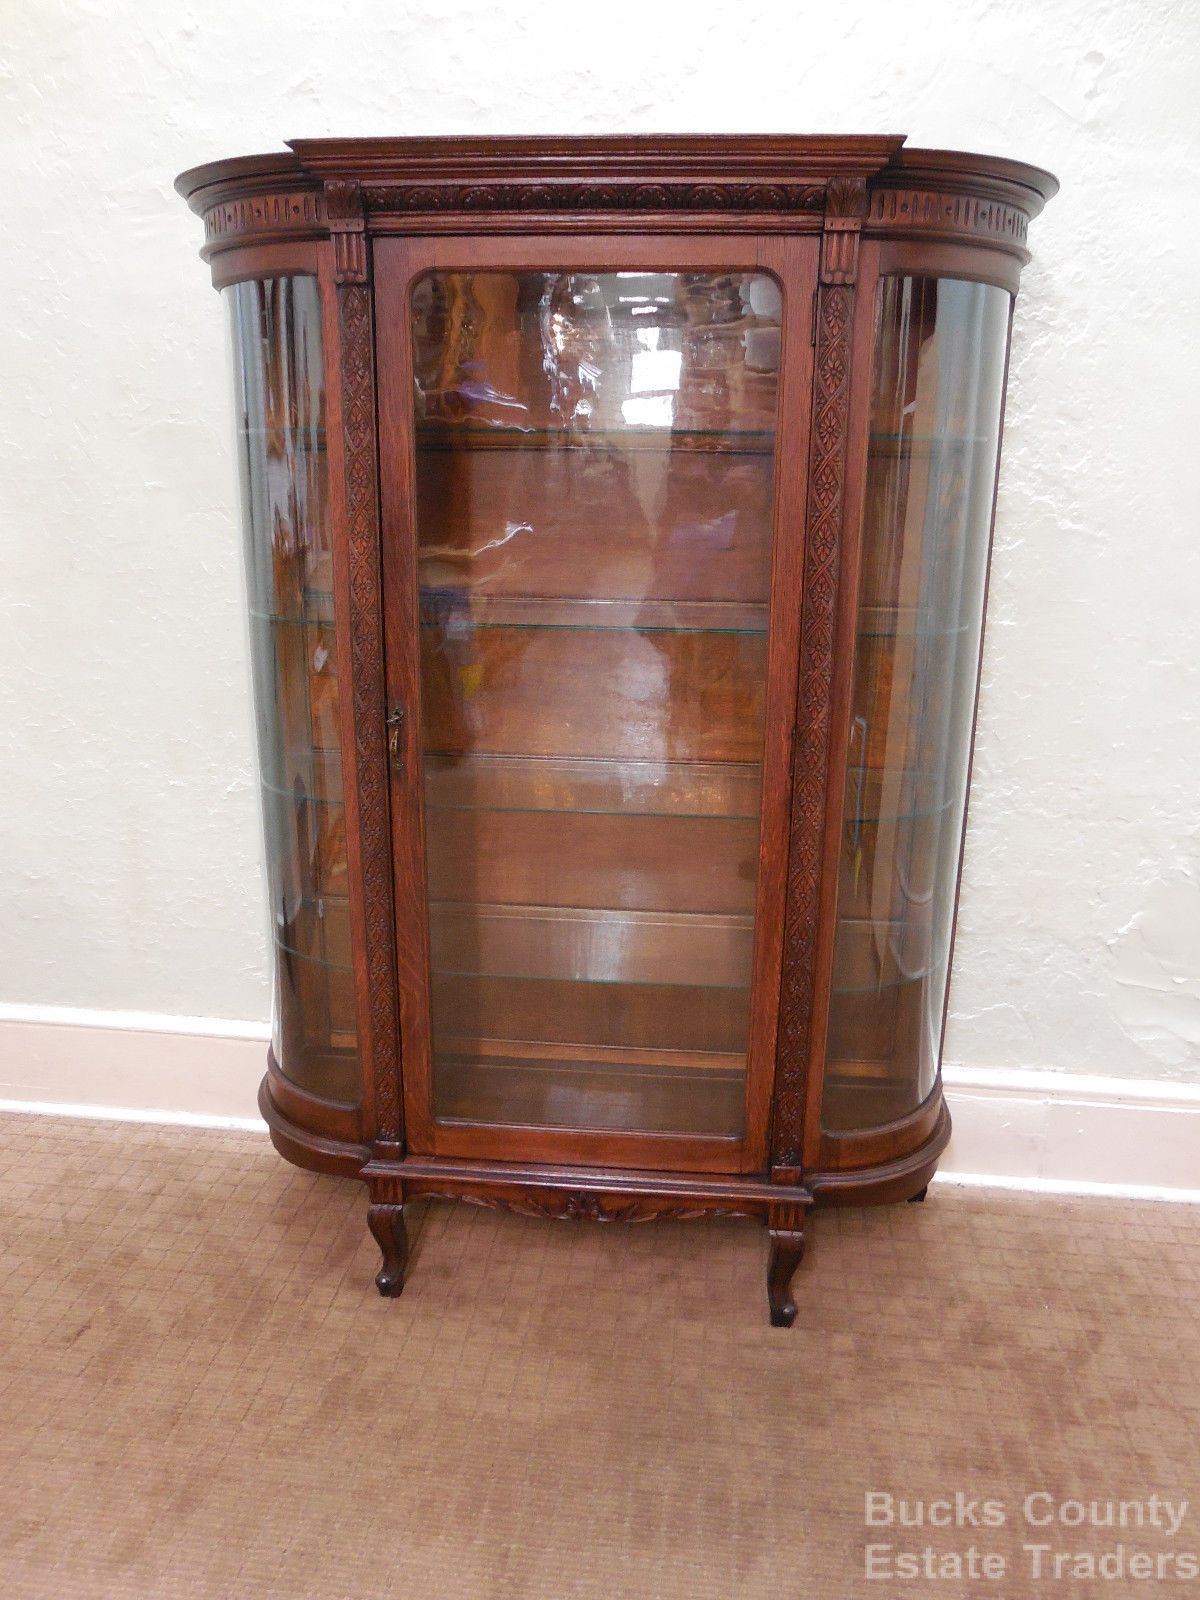 Antique Victorian Oak Bowed Glass China Curio Cabinet - Price My Item: Value Of American Victorian Carved Oak Curved Glass